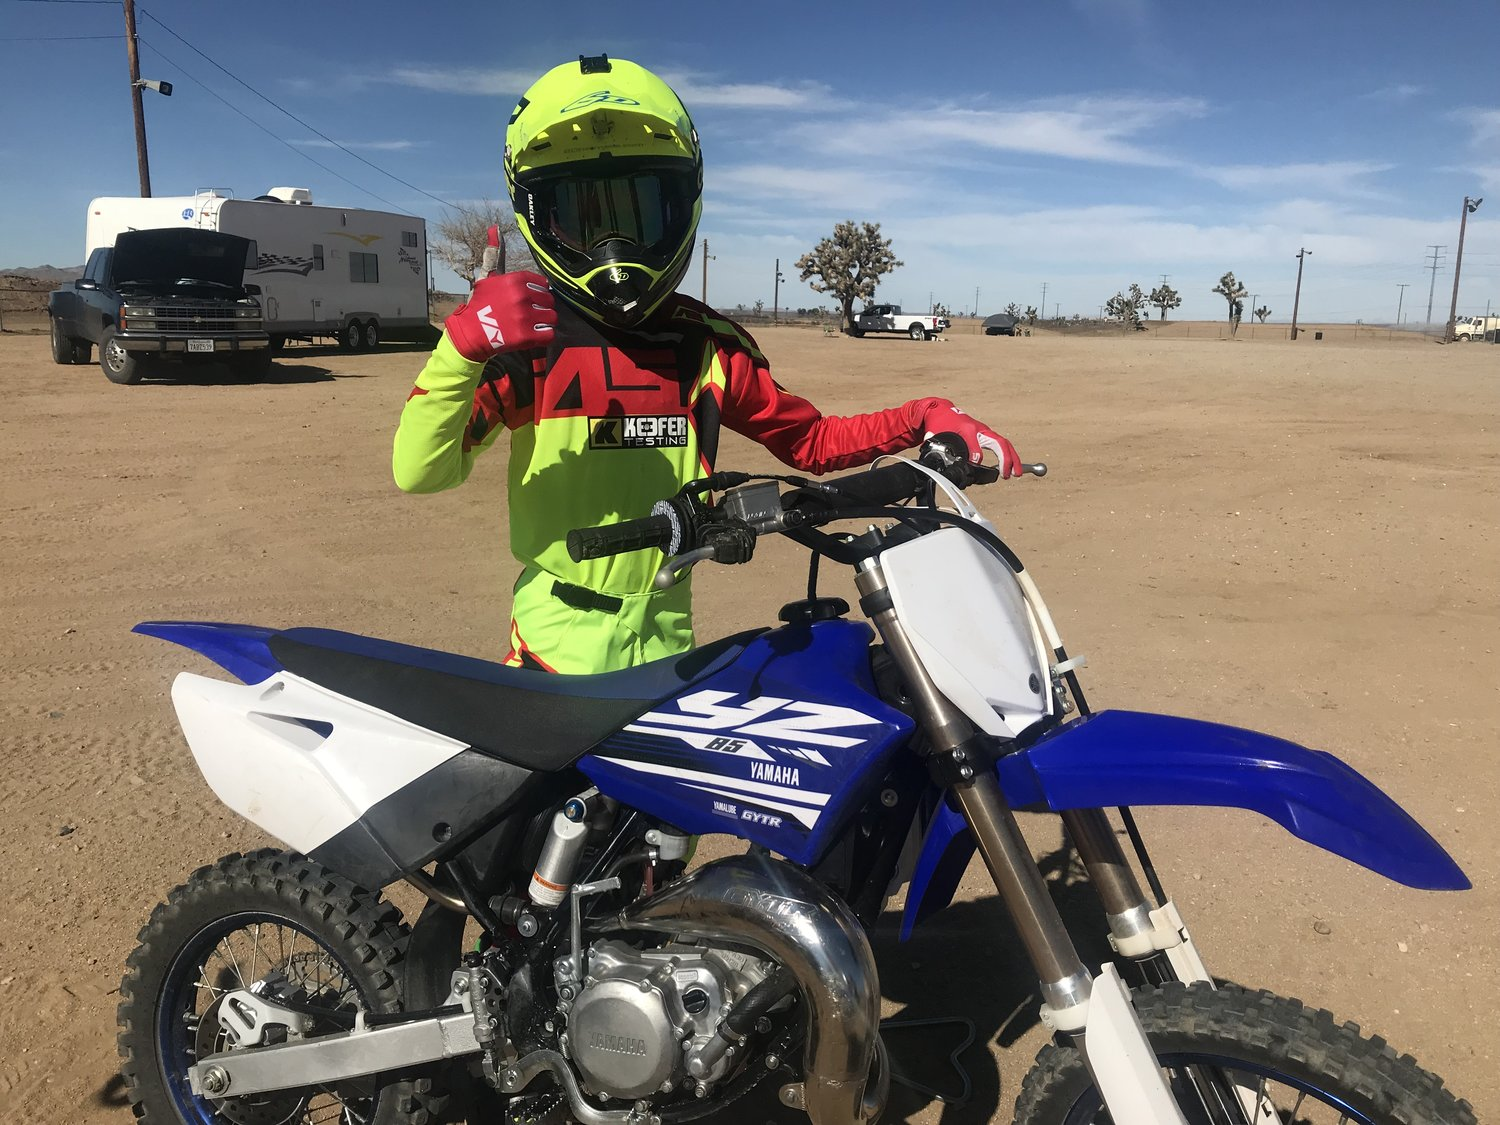 2018 Yamaha YZ85 Review — Keefer Inc  Testing